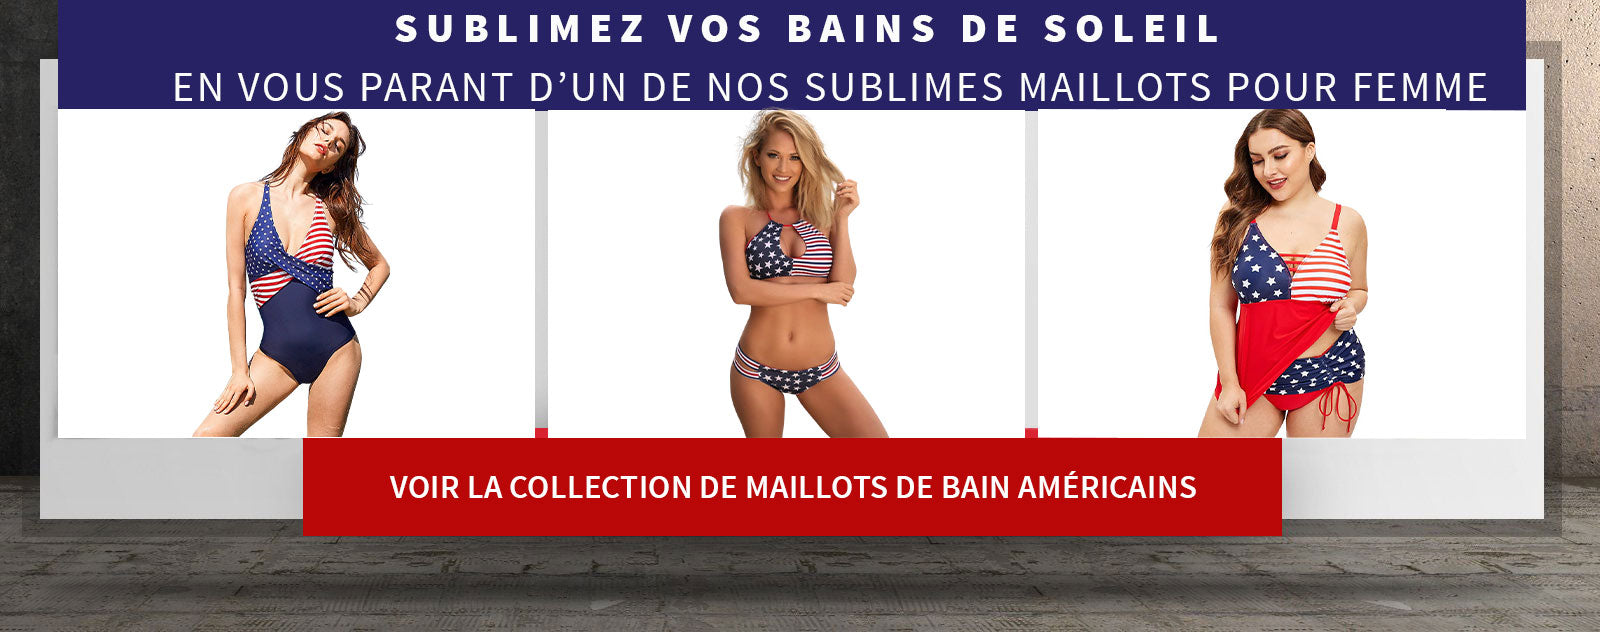 maillots usa femme